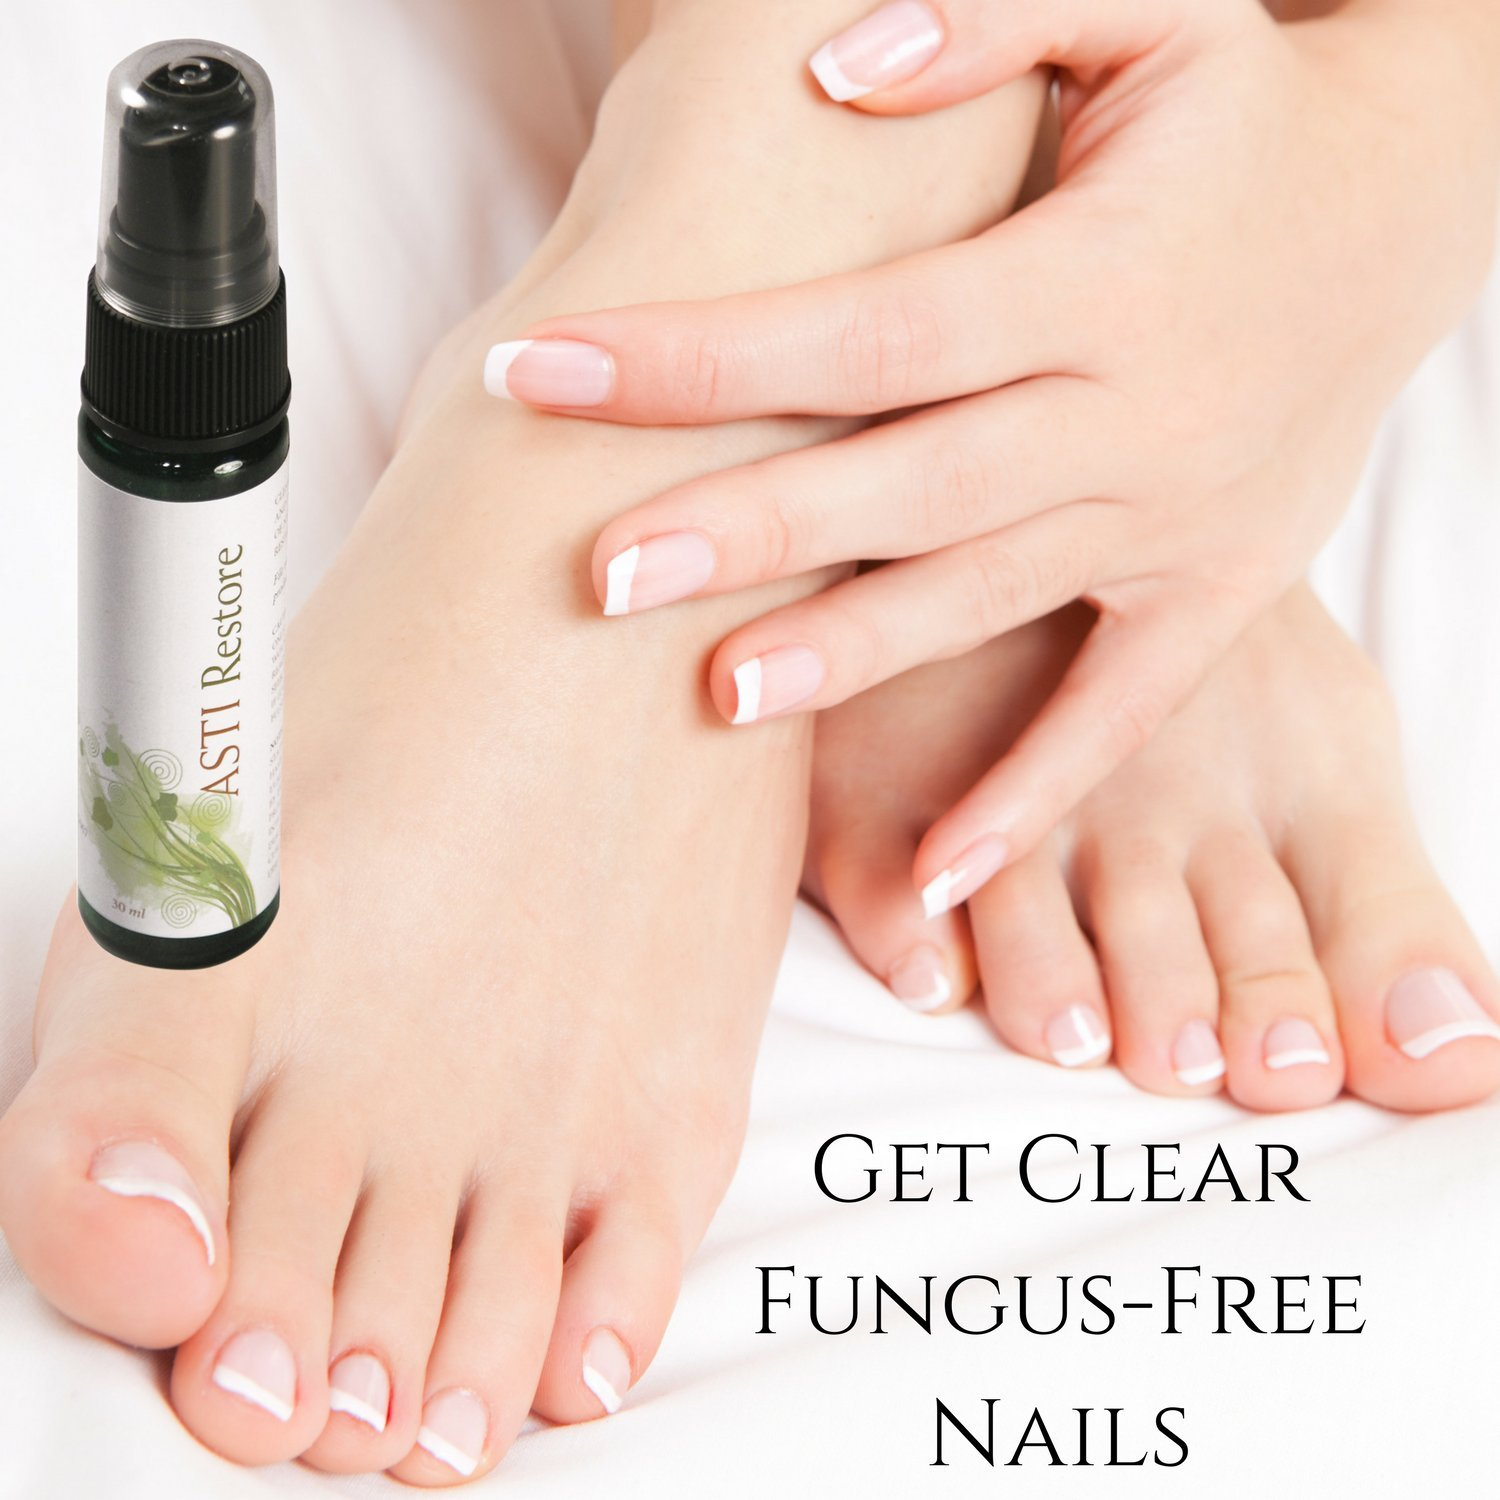 Amazon.com : 100% Natural Nail Fungus Remedy for Toenail or ...